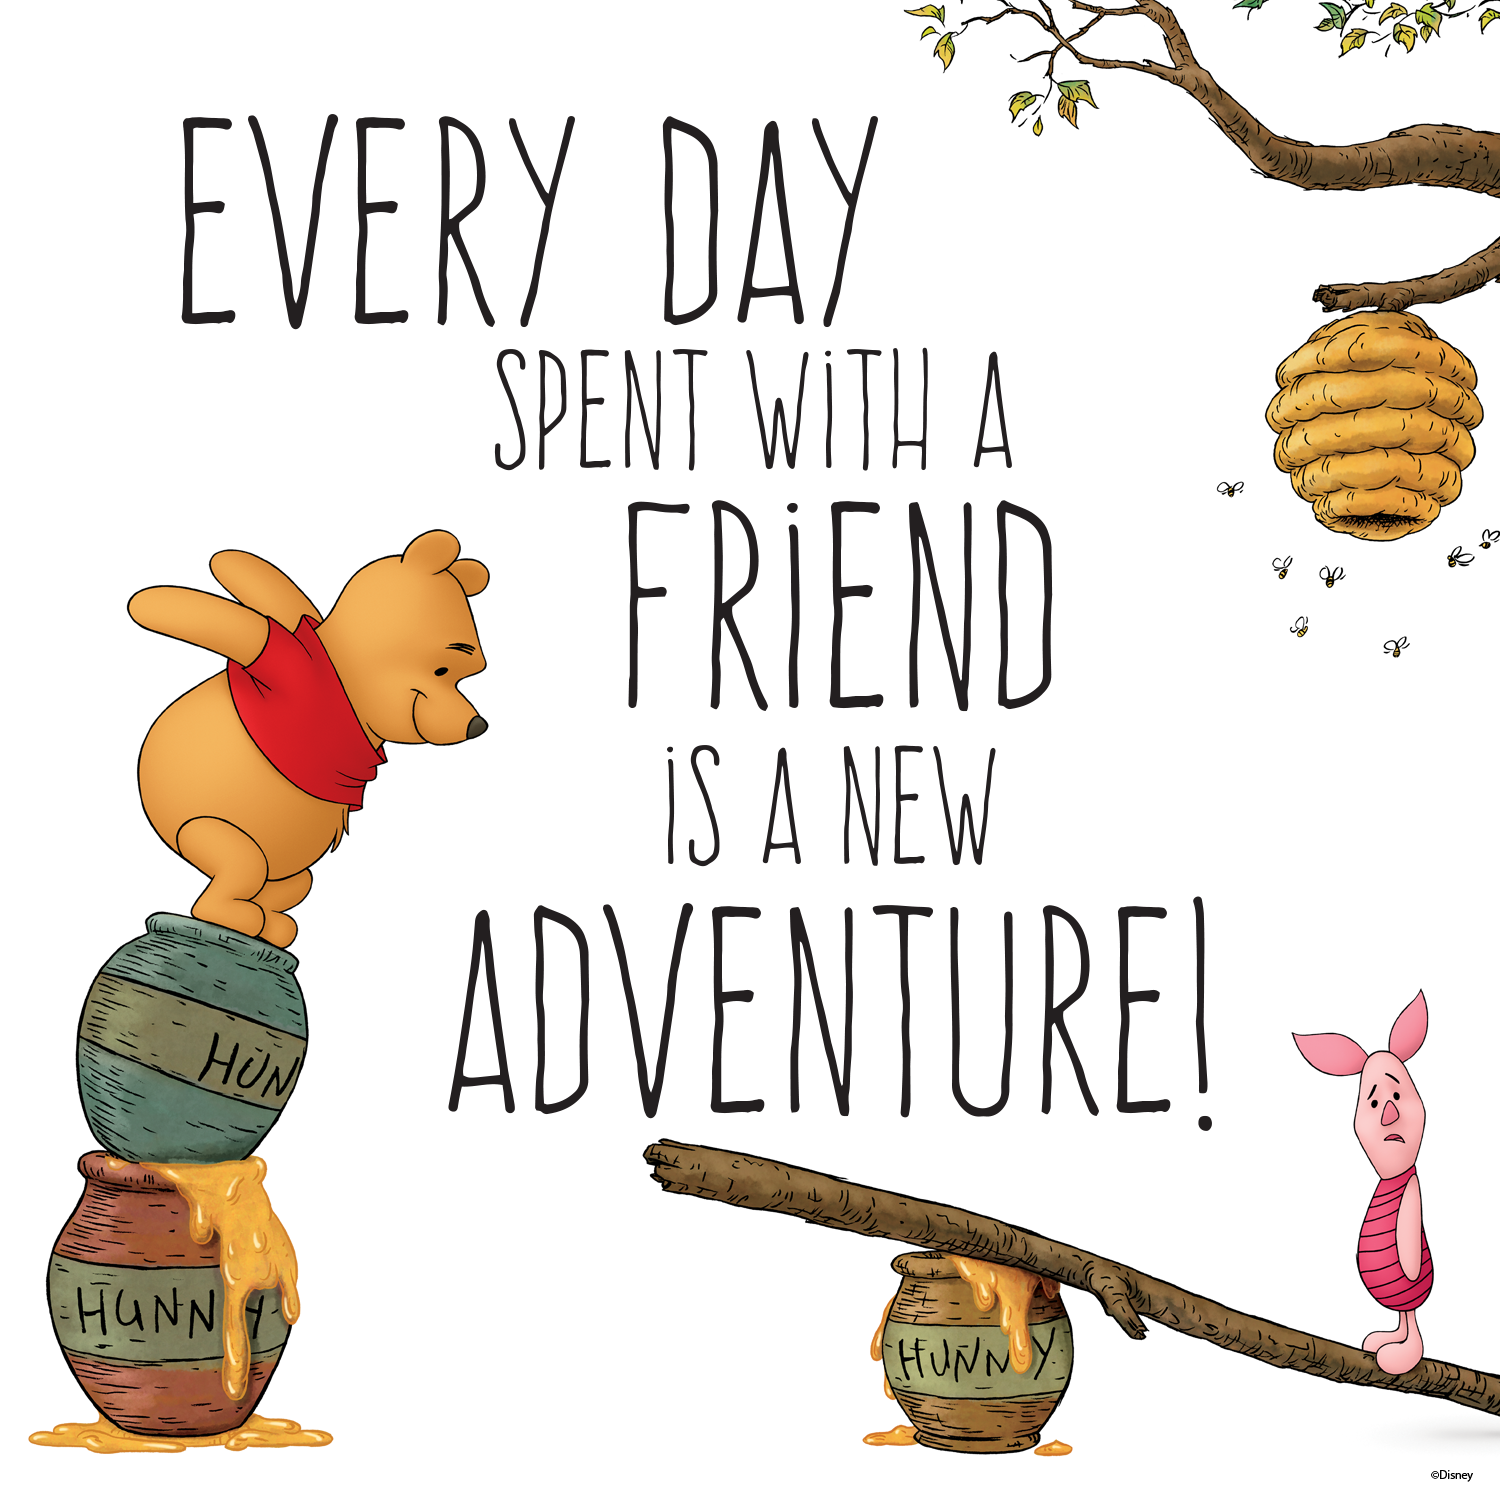 Every day spent with a friend is a new adventure ...